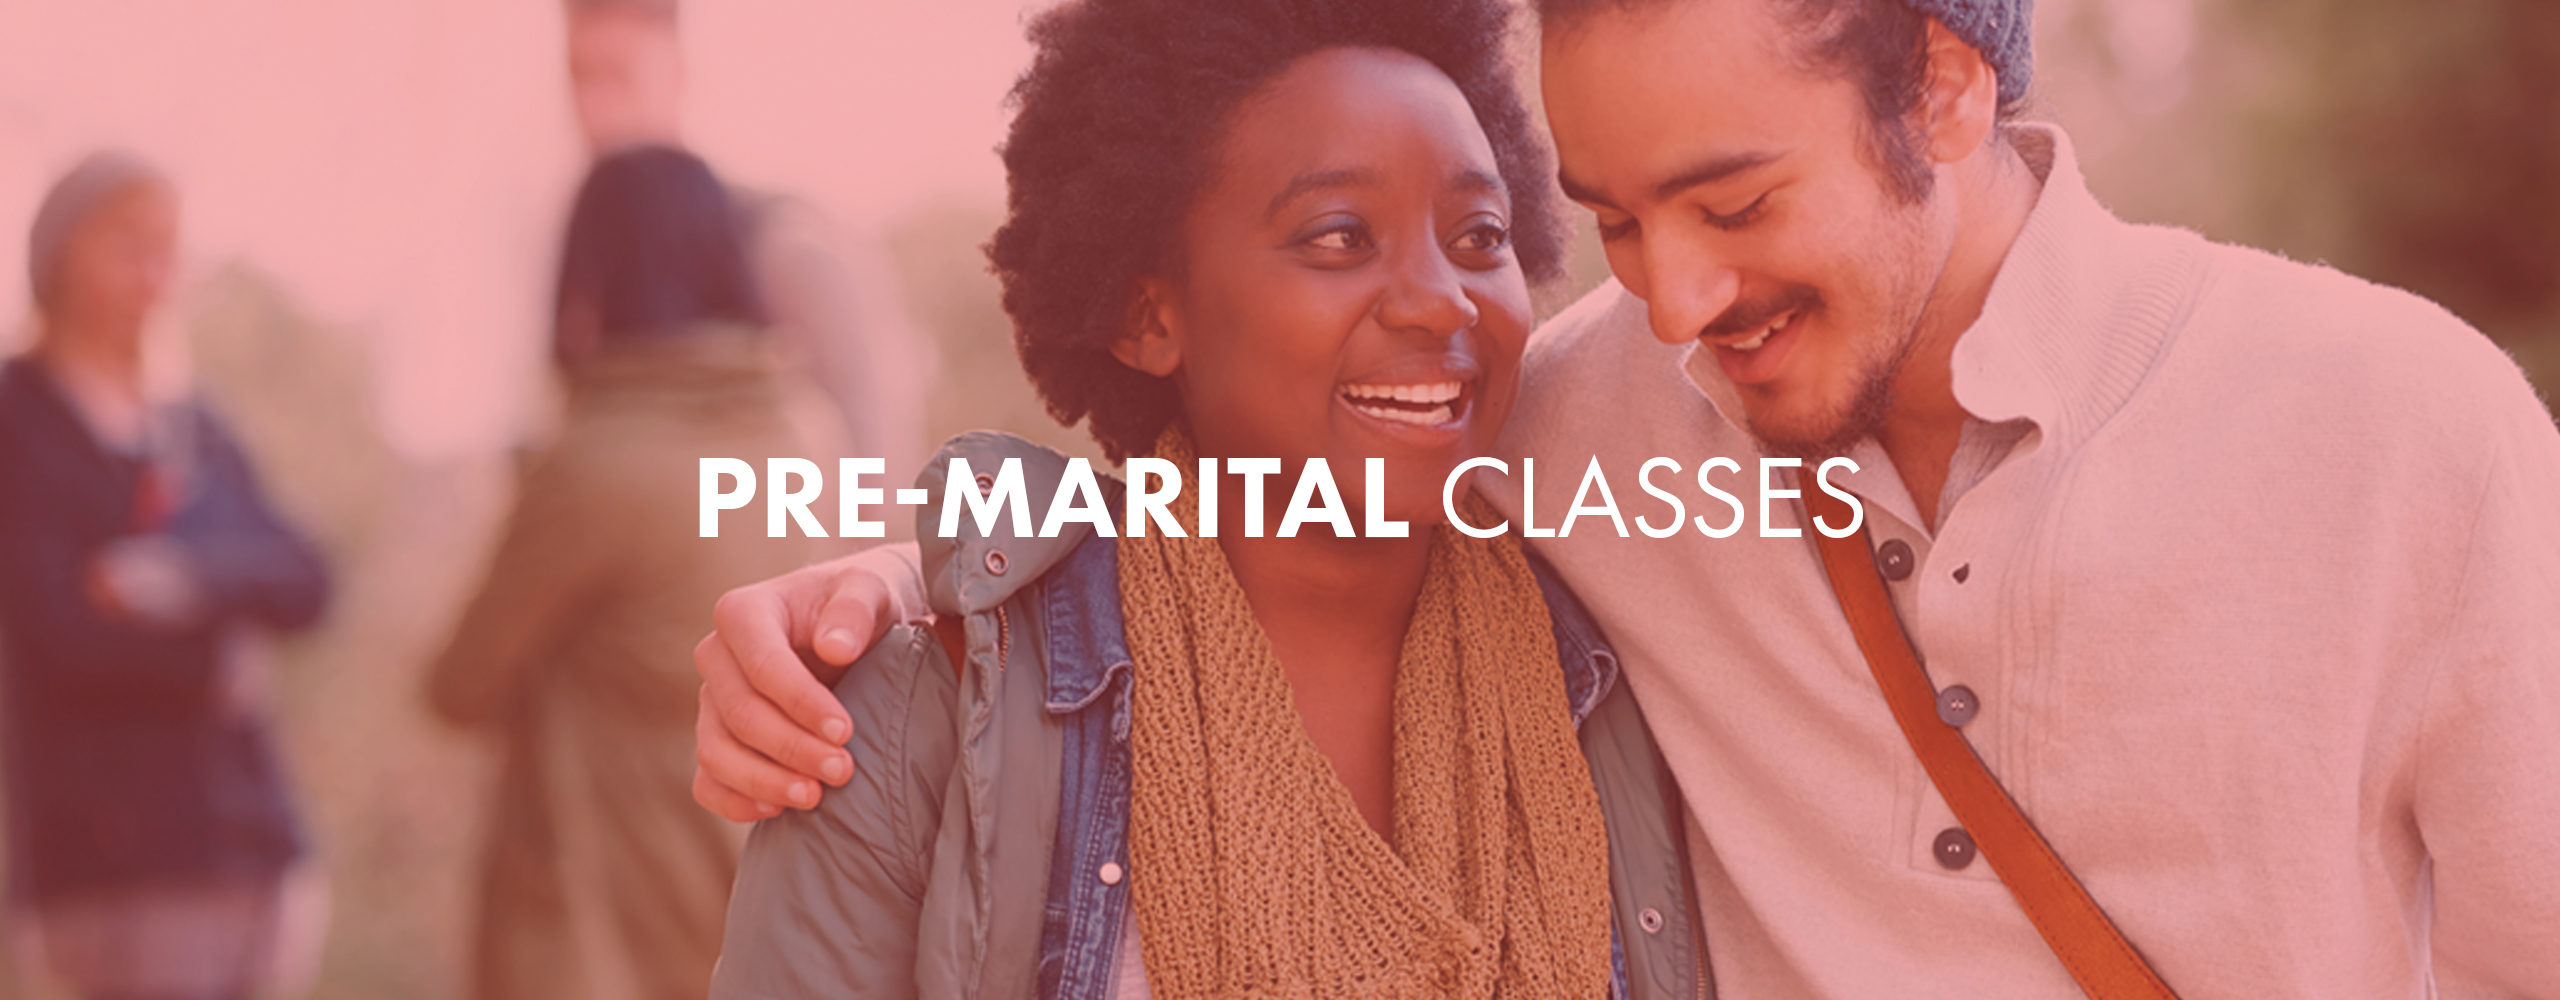 Premarital Classes banner